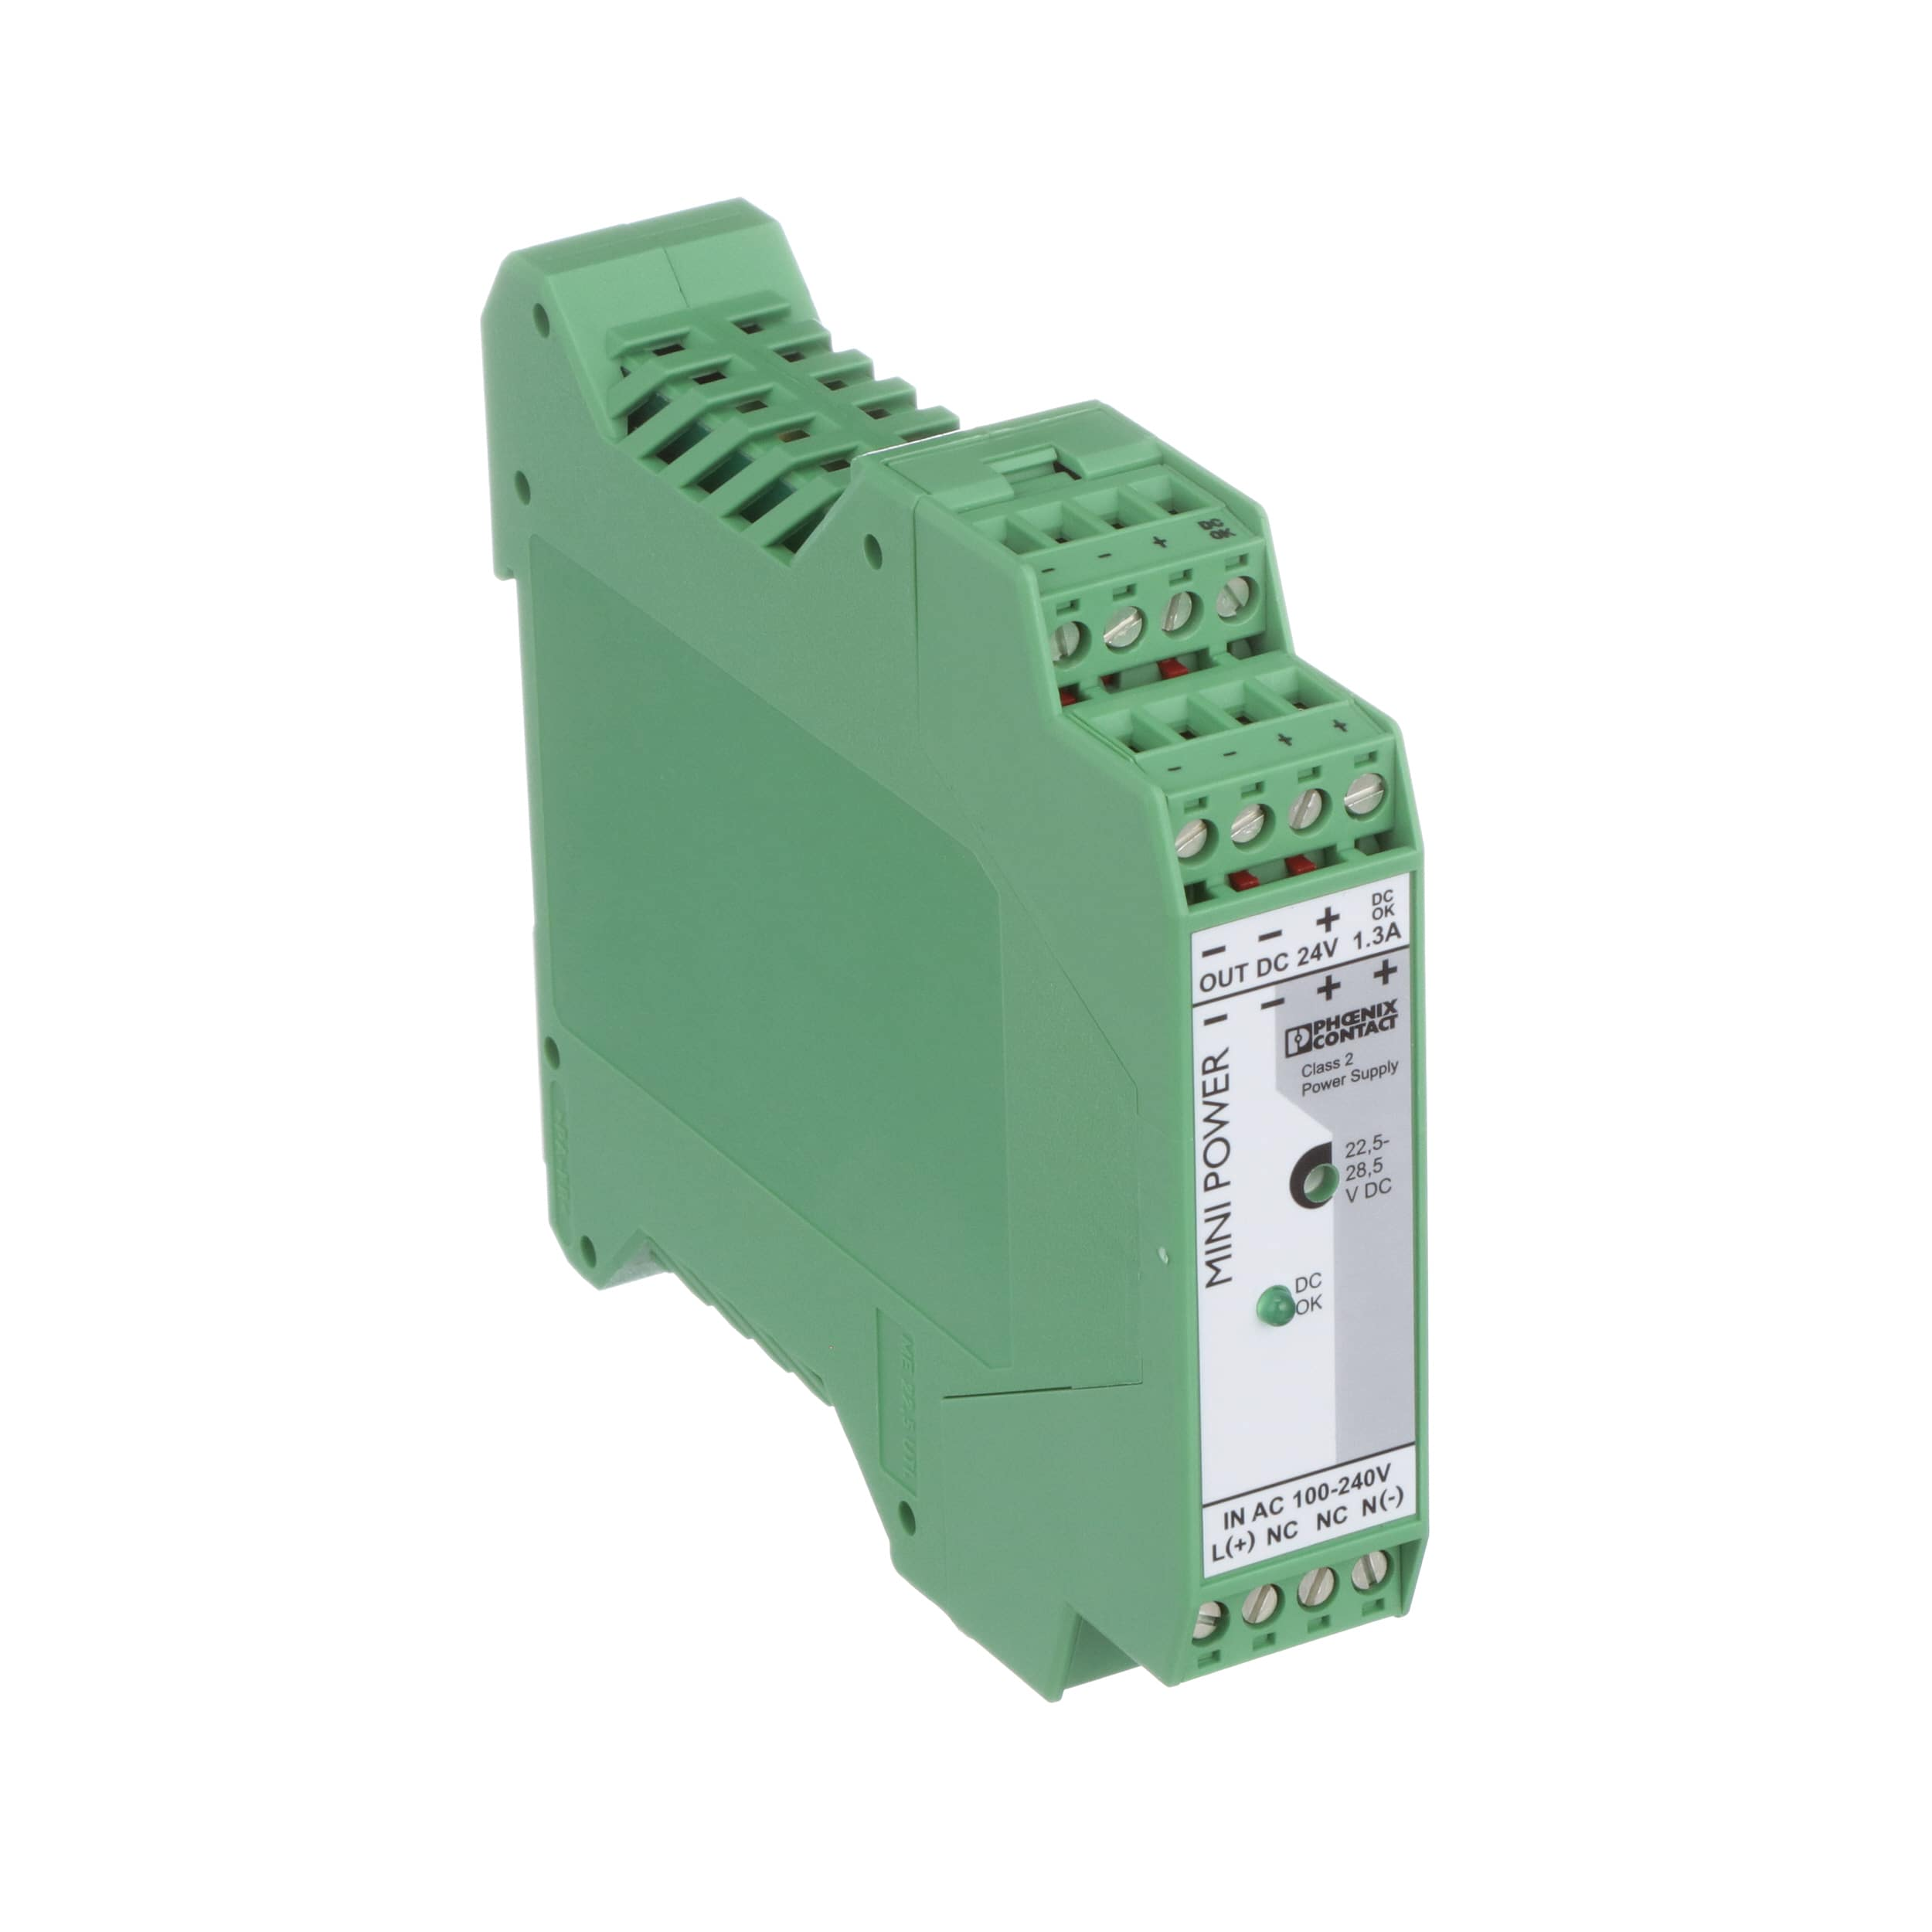 Phoenix Contact 2866446 Din Rail Mount Power Supply 24v 13a Supplies Discrete Semiconductor Devices And Circuits Input 85 264v 31w Mini Series Allied Electronics Automation